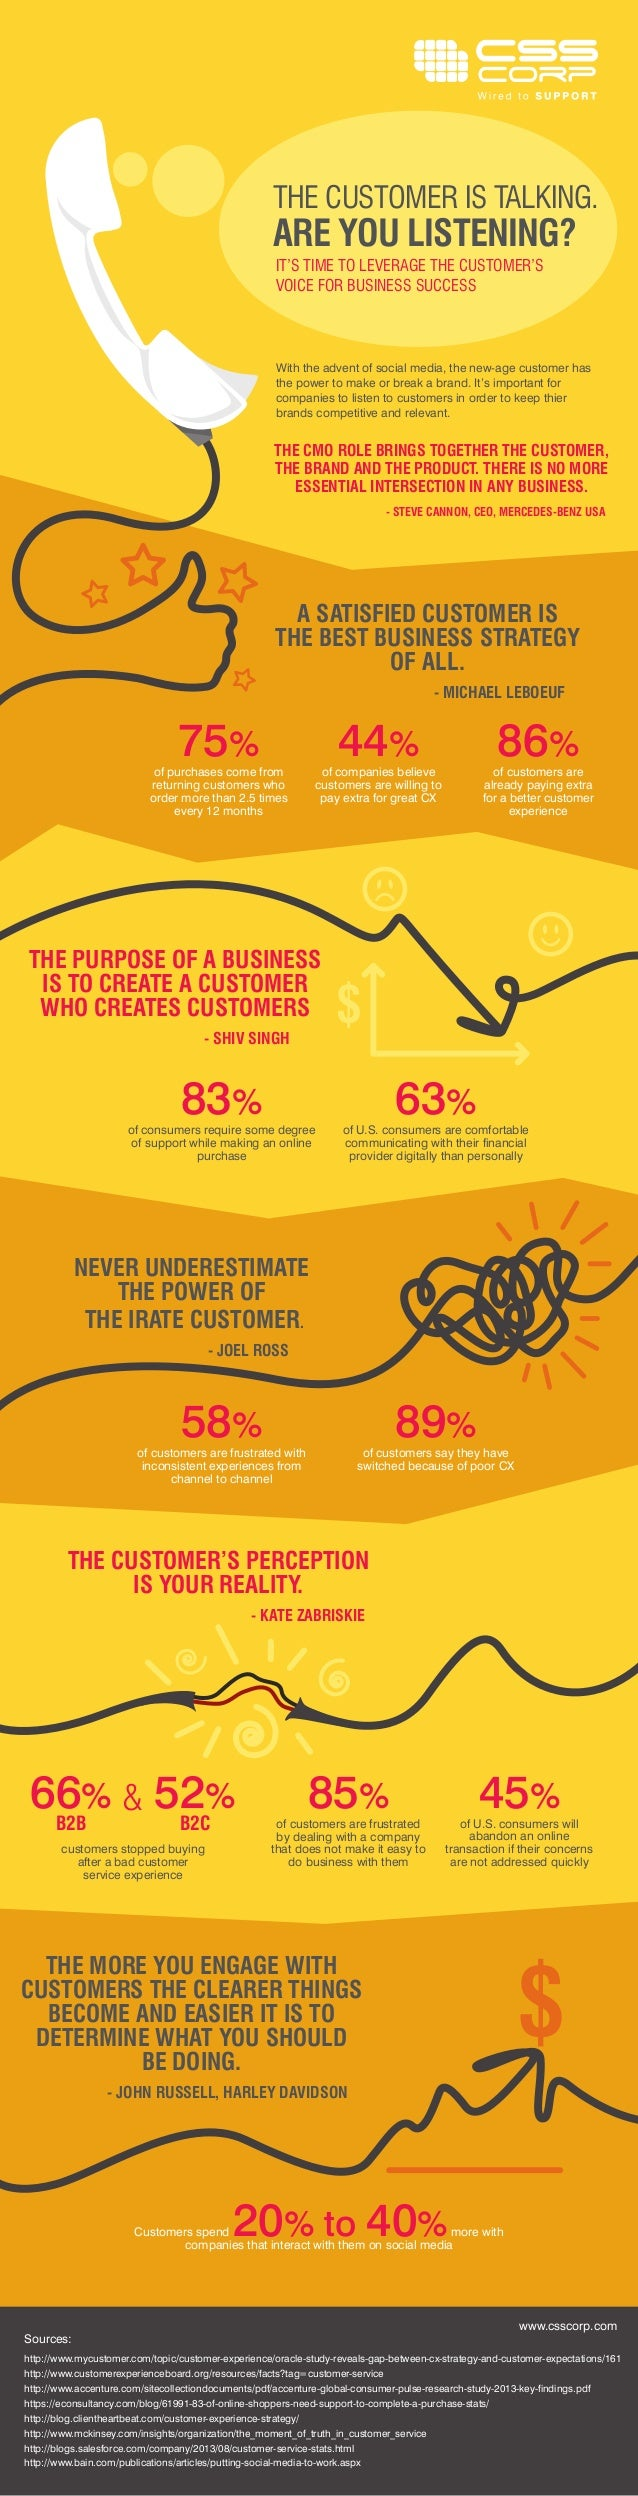 75% 44% 86% THE CUSTOMER IS TALKING. ARE YOU LISTENING? With the advent of social media, the new-age customer has the powe...